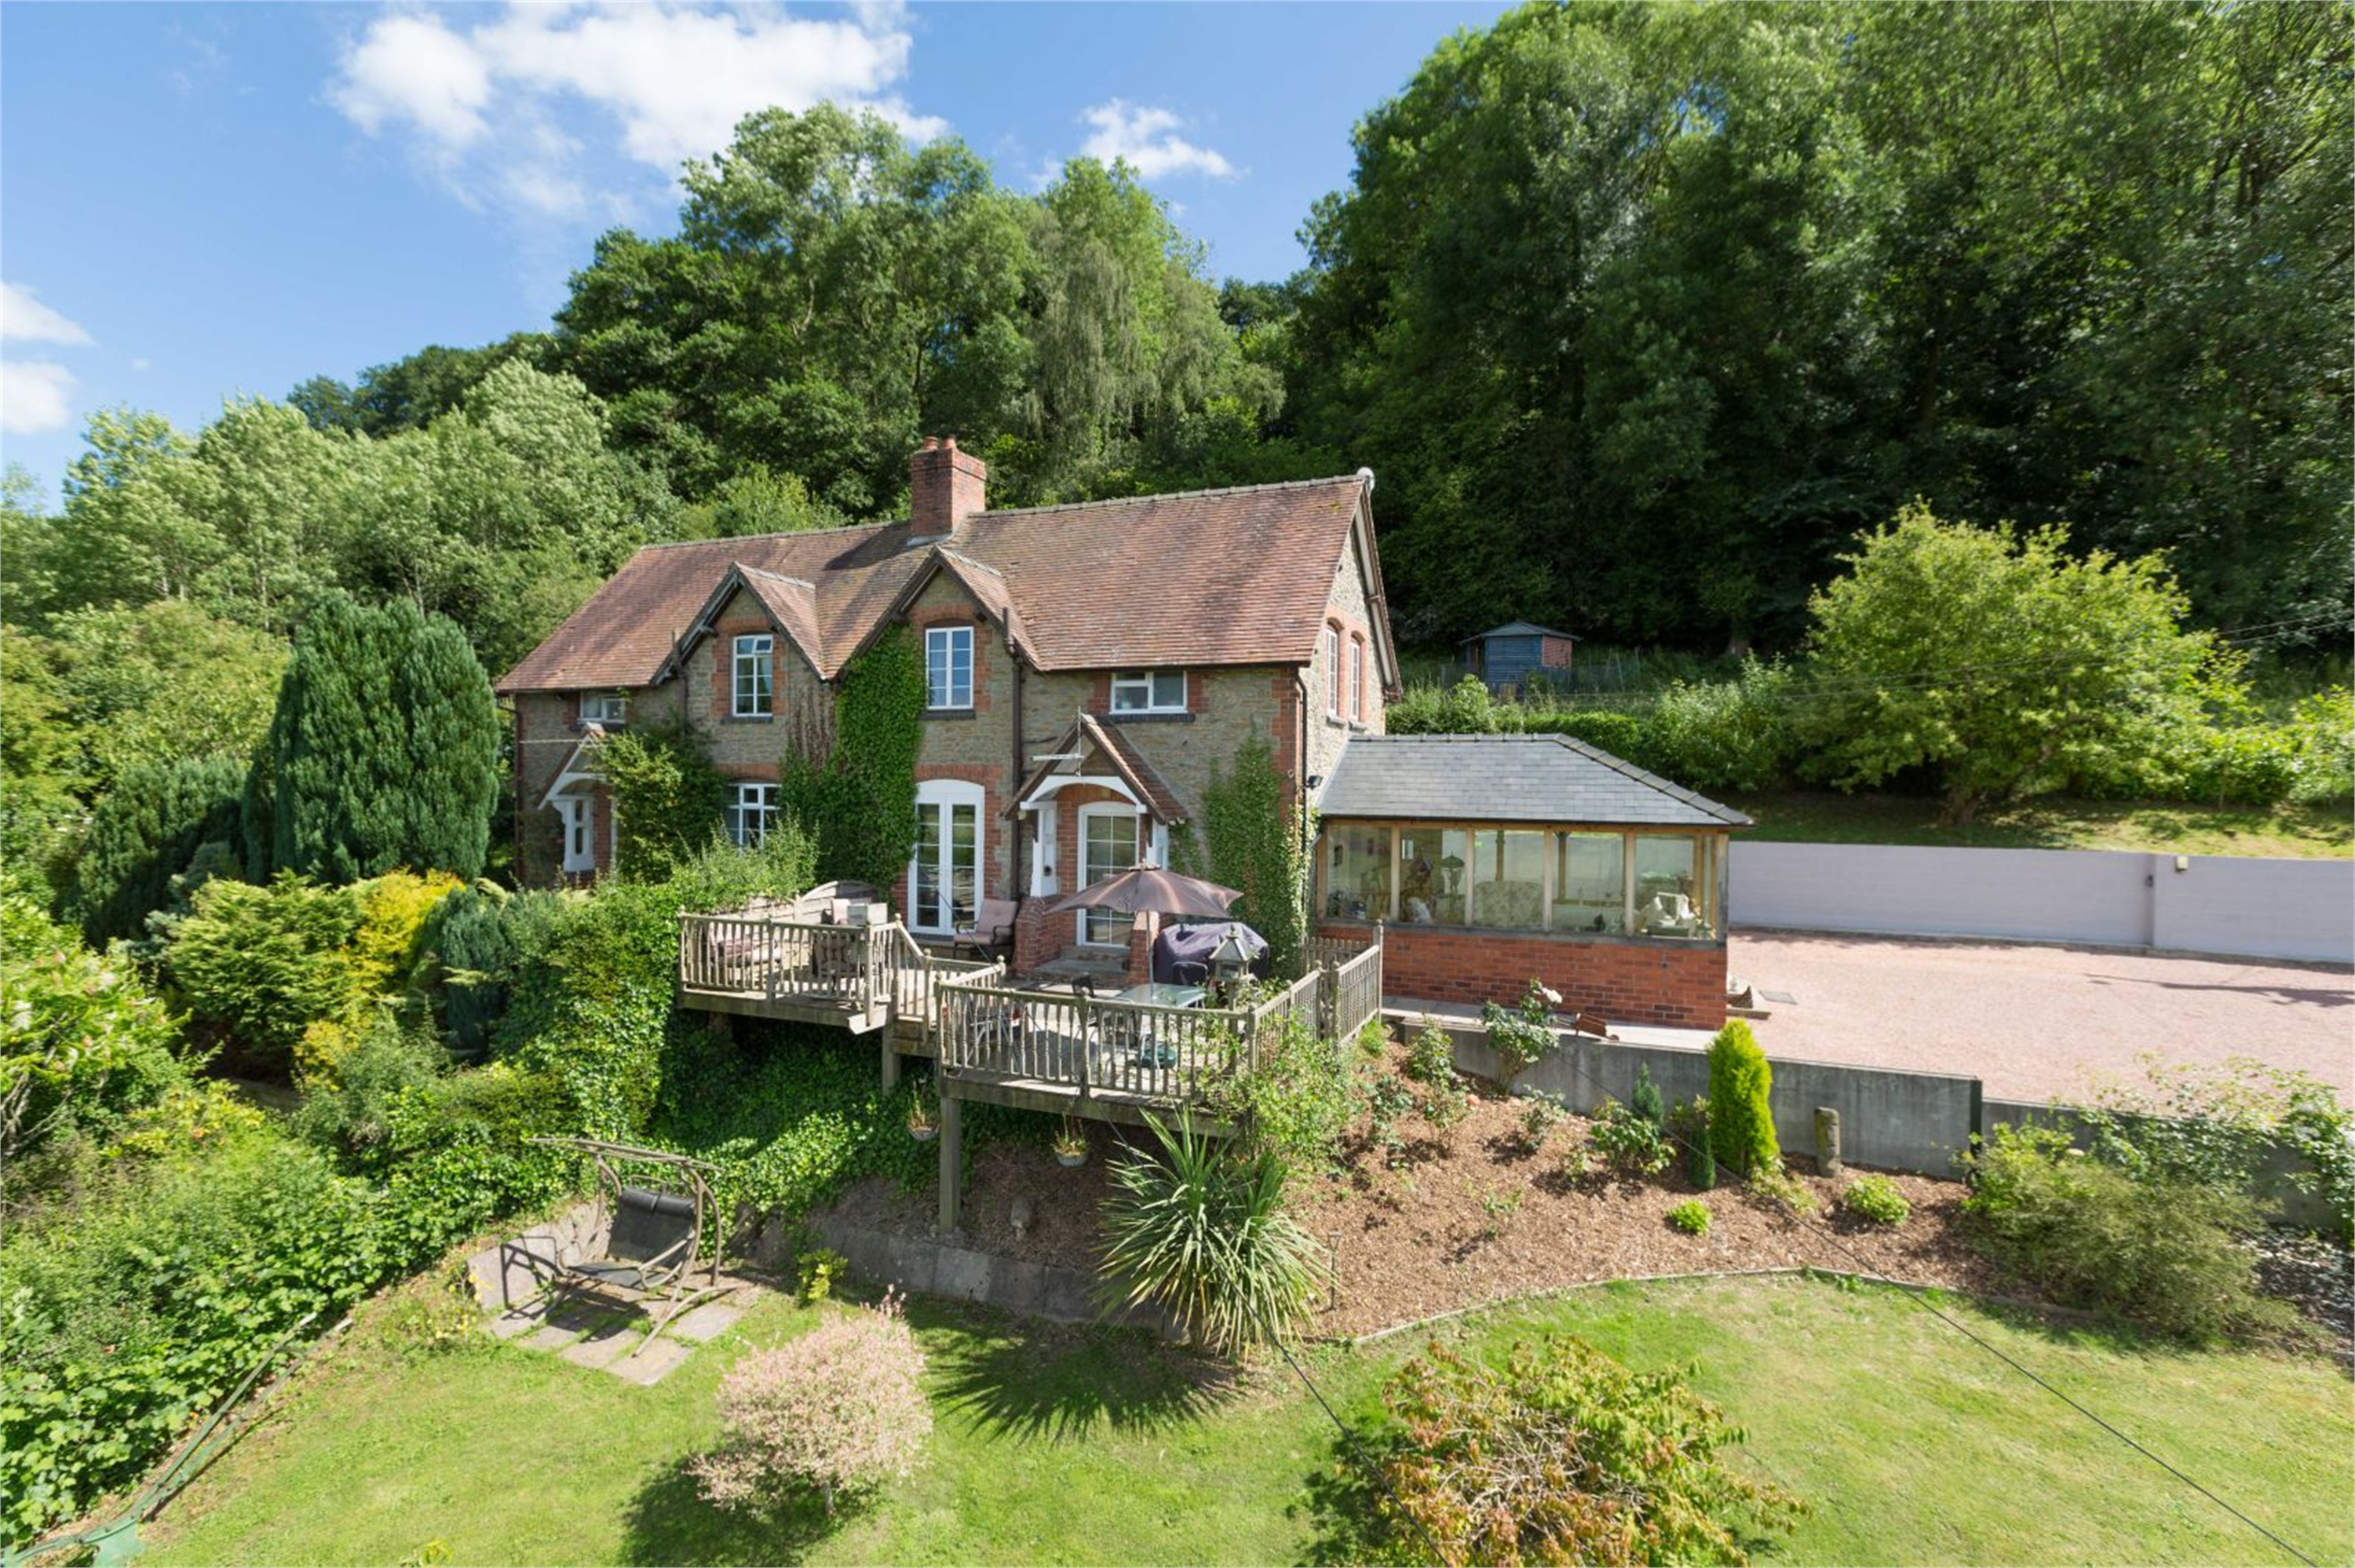 3 Bedrooms Semi Detached House for sale in 2 New Cottages, Leinthall Starkes, Ludlow, Shropshire, SY8